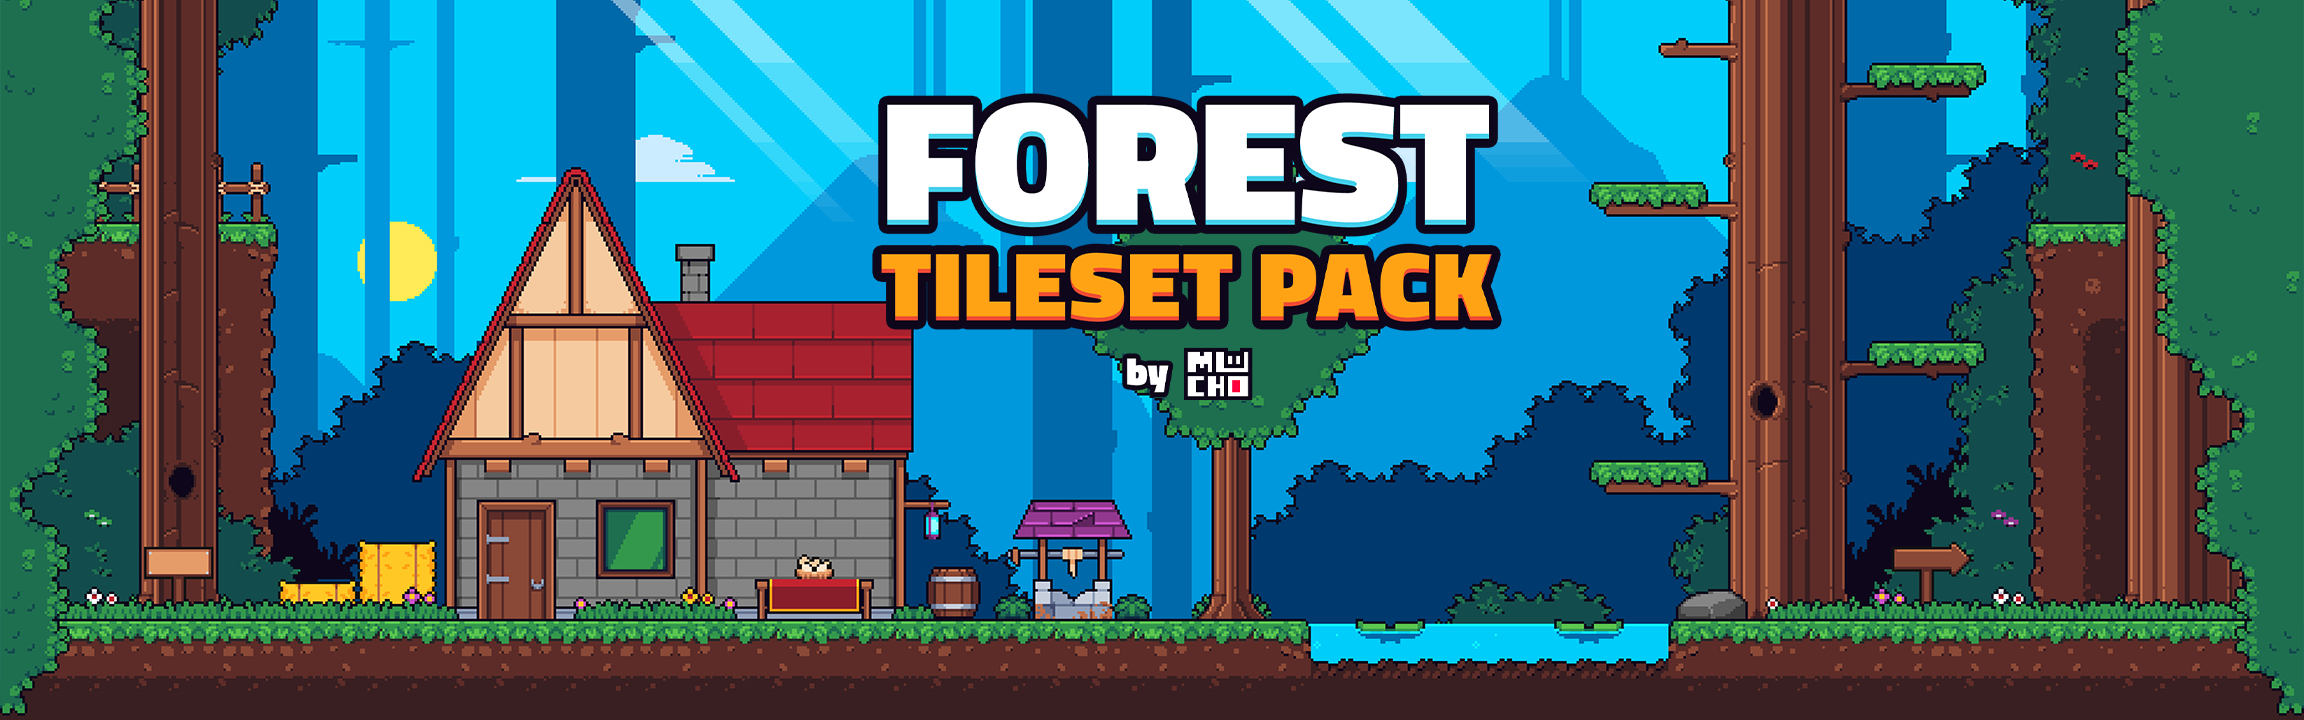 Forest Tileset Pack